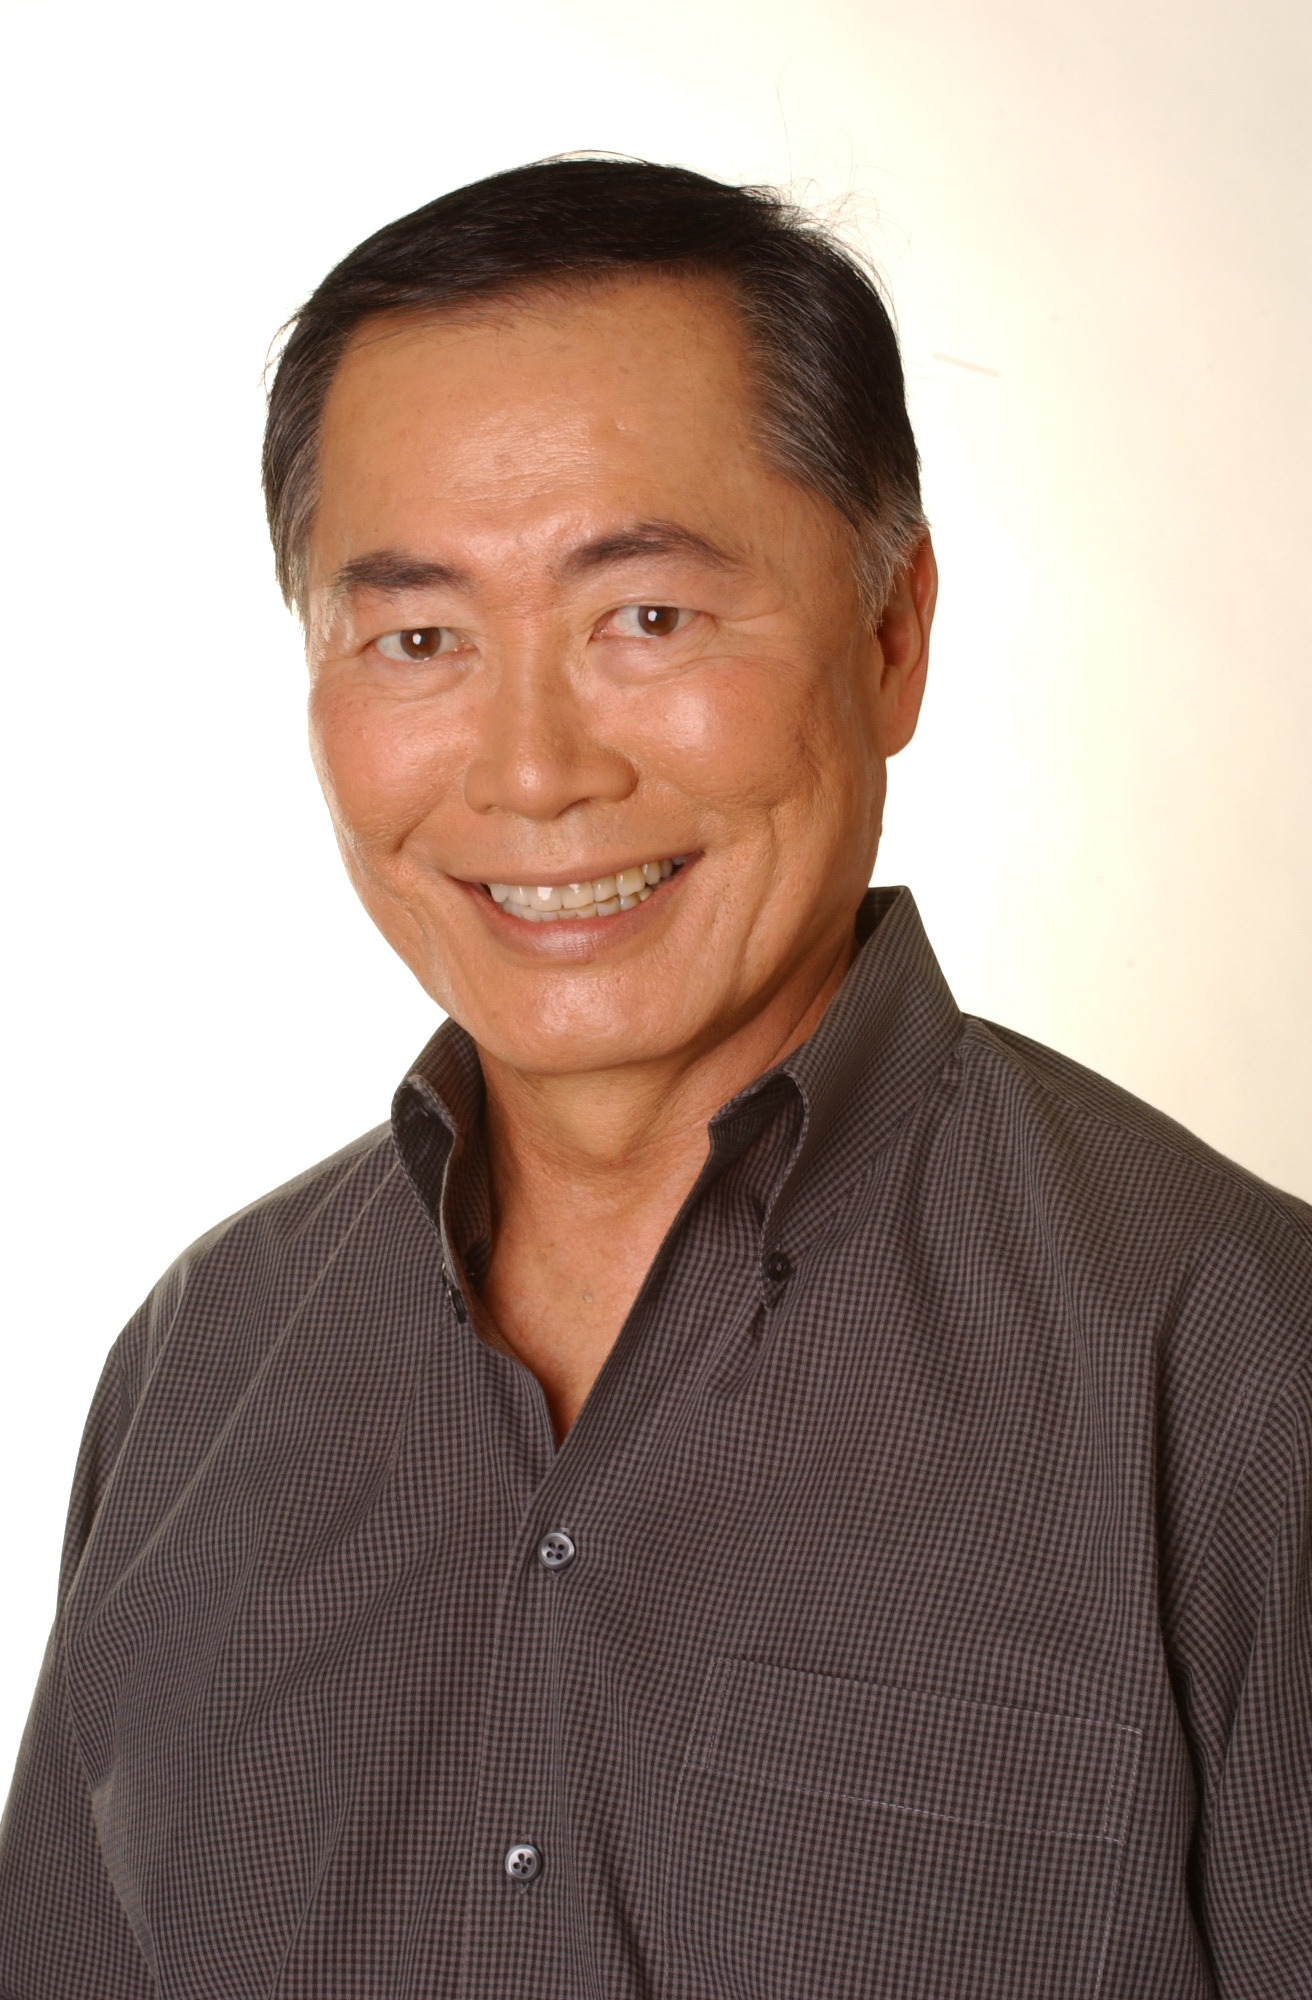 Georges Takei